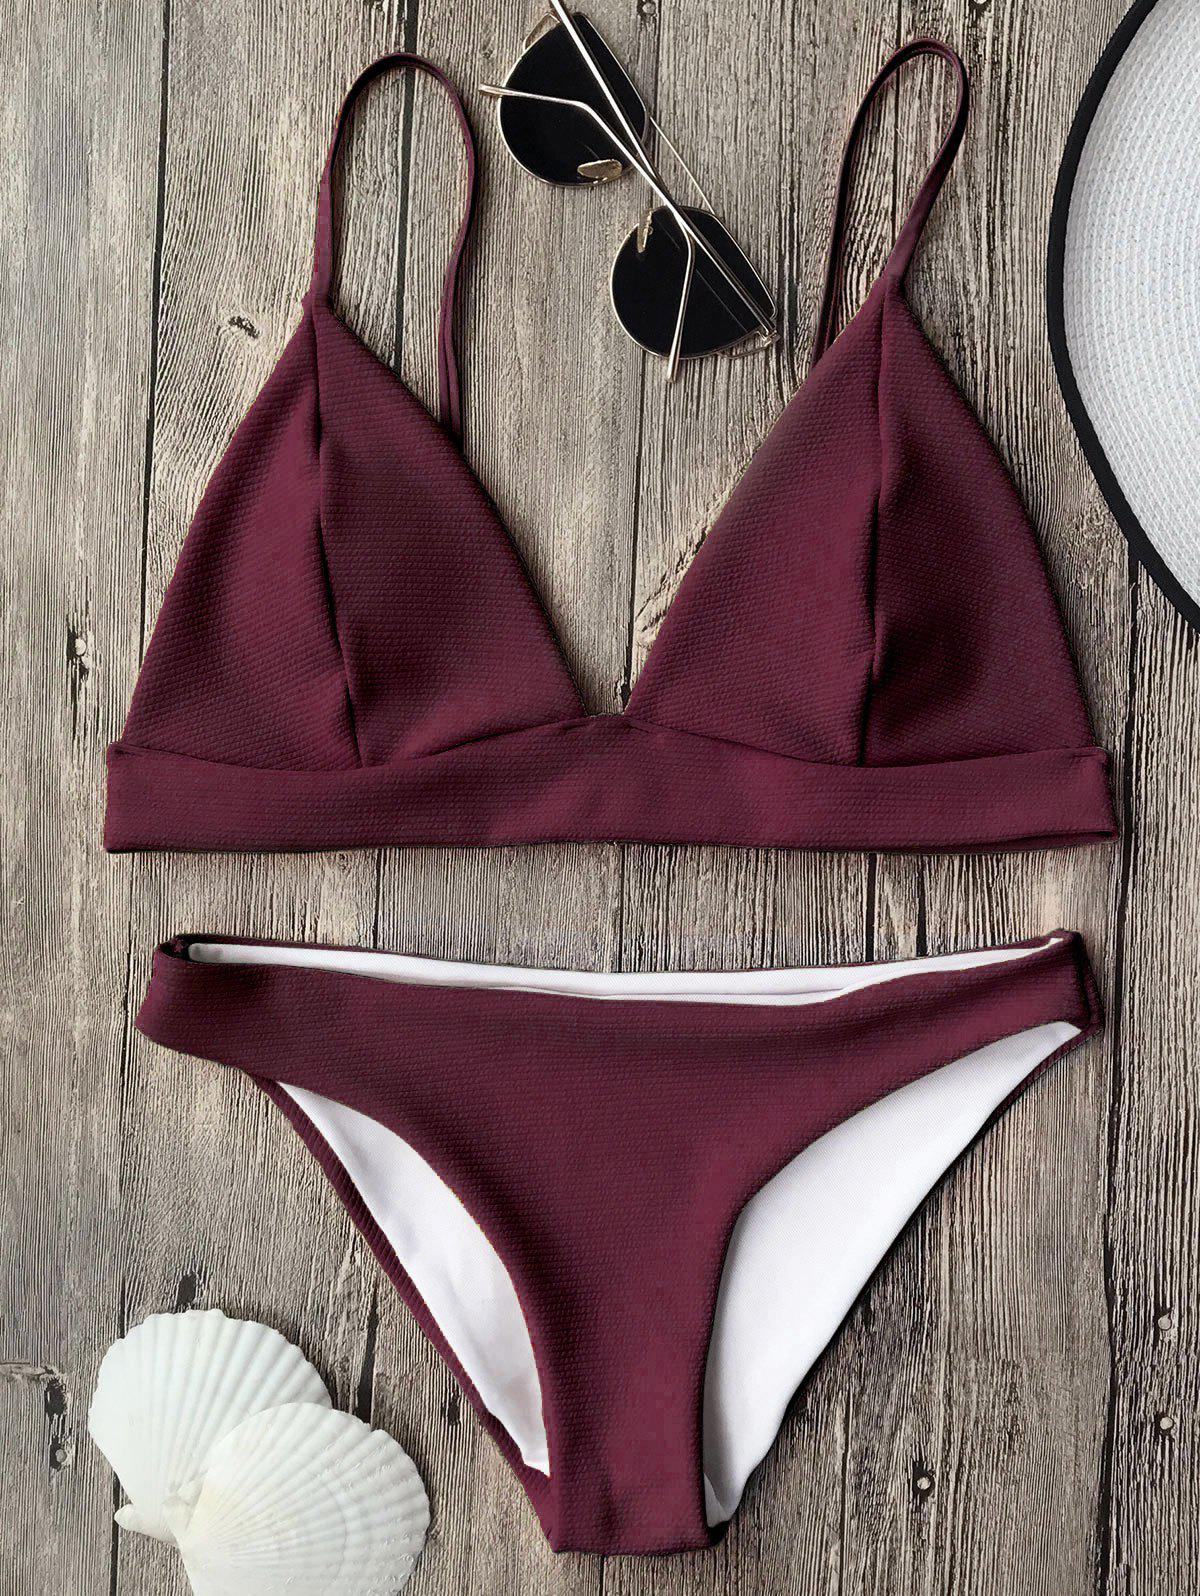 Cami Plunge Bikini Top and BottomsWOMEN<br><br>Size: M; Color: BURGUNDY; Swimwear Type: Bikini; Gender: For Women; Material: Polyester,Spandex; Bra Style: Padded; Support Type: Wire Free; Neckline: Spaghetti Straps; Pattern Type: Solid; Waist: Low Waisted; Elasticity: Elastic; Weight: 0.2000kg; Package Contents: 1 x Top  1 x Bottoms;